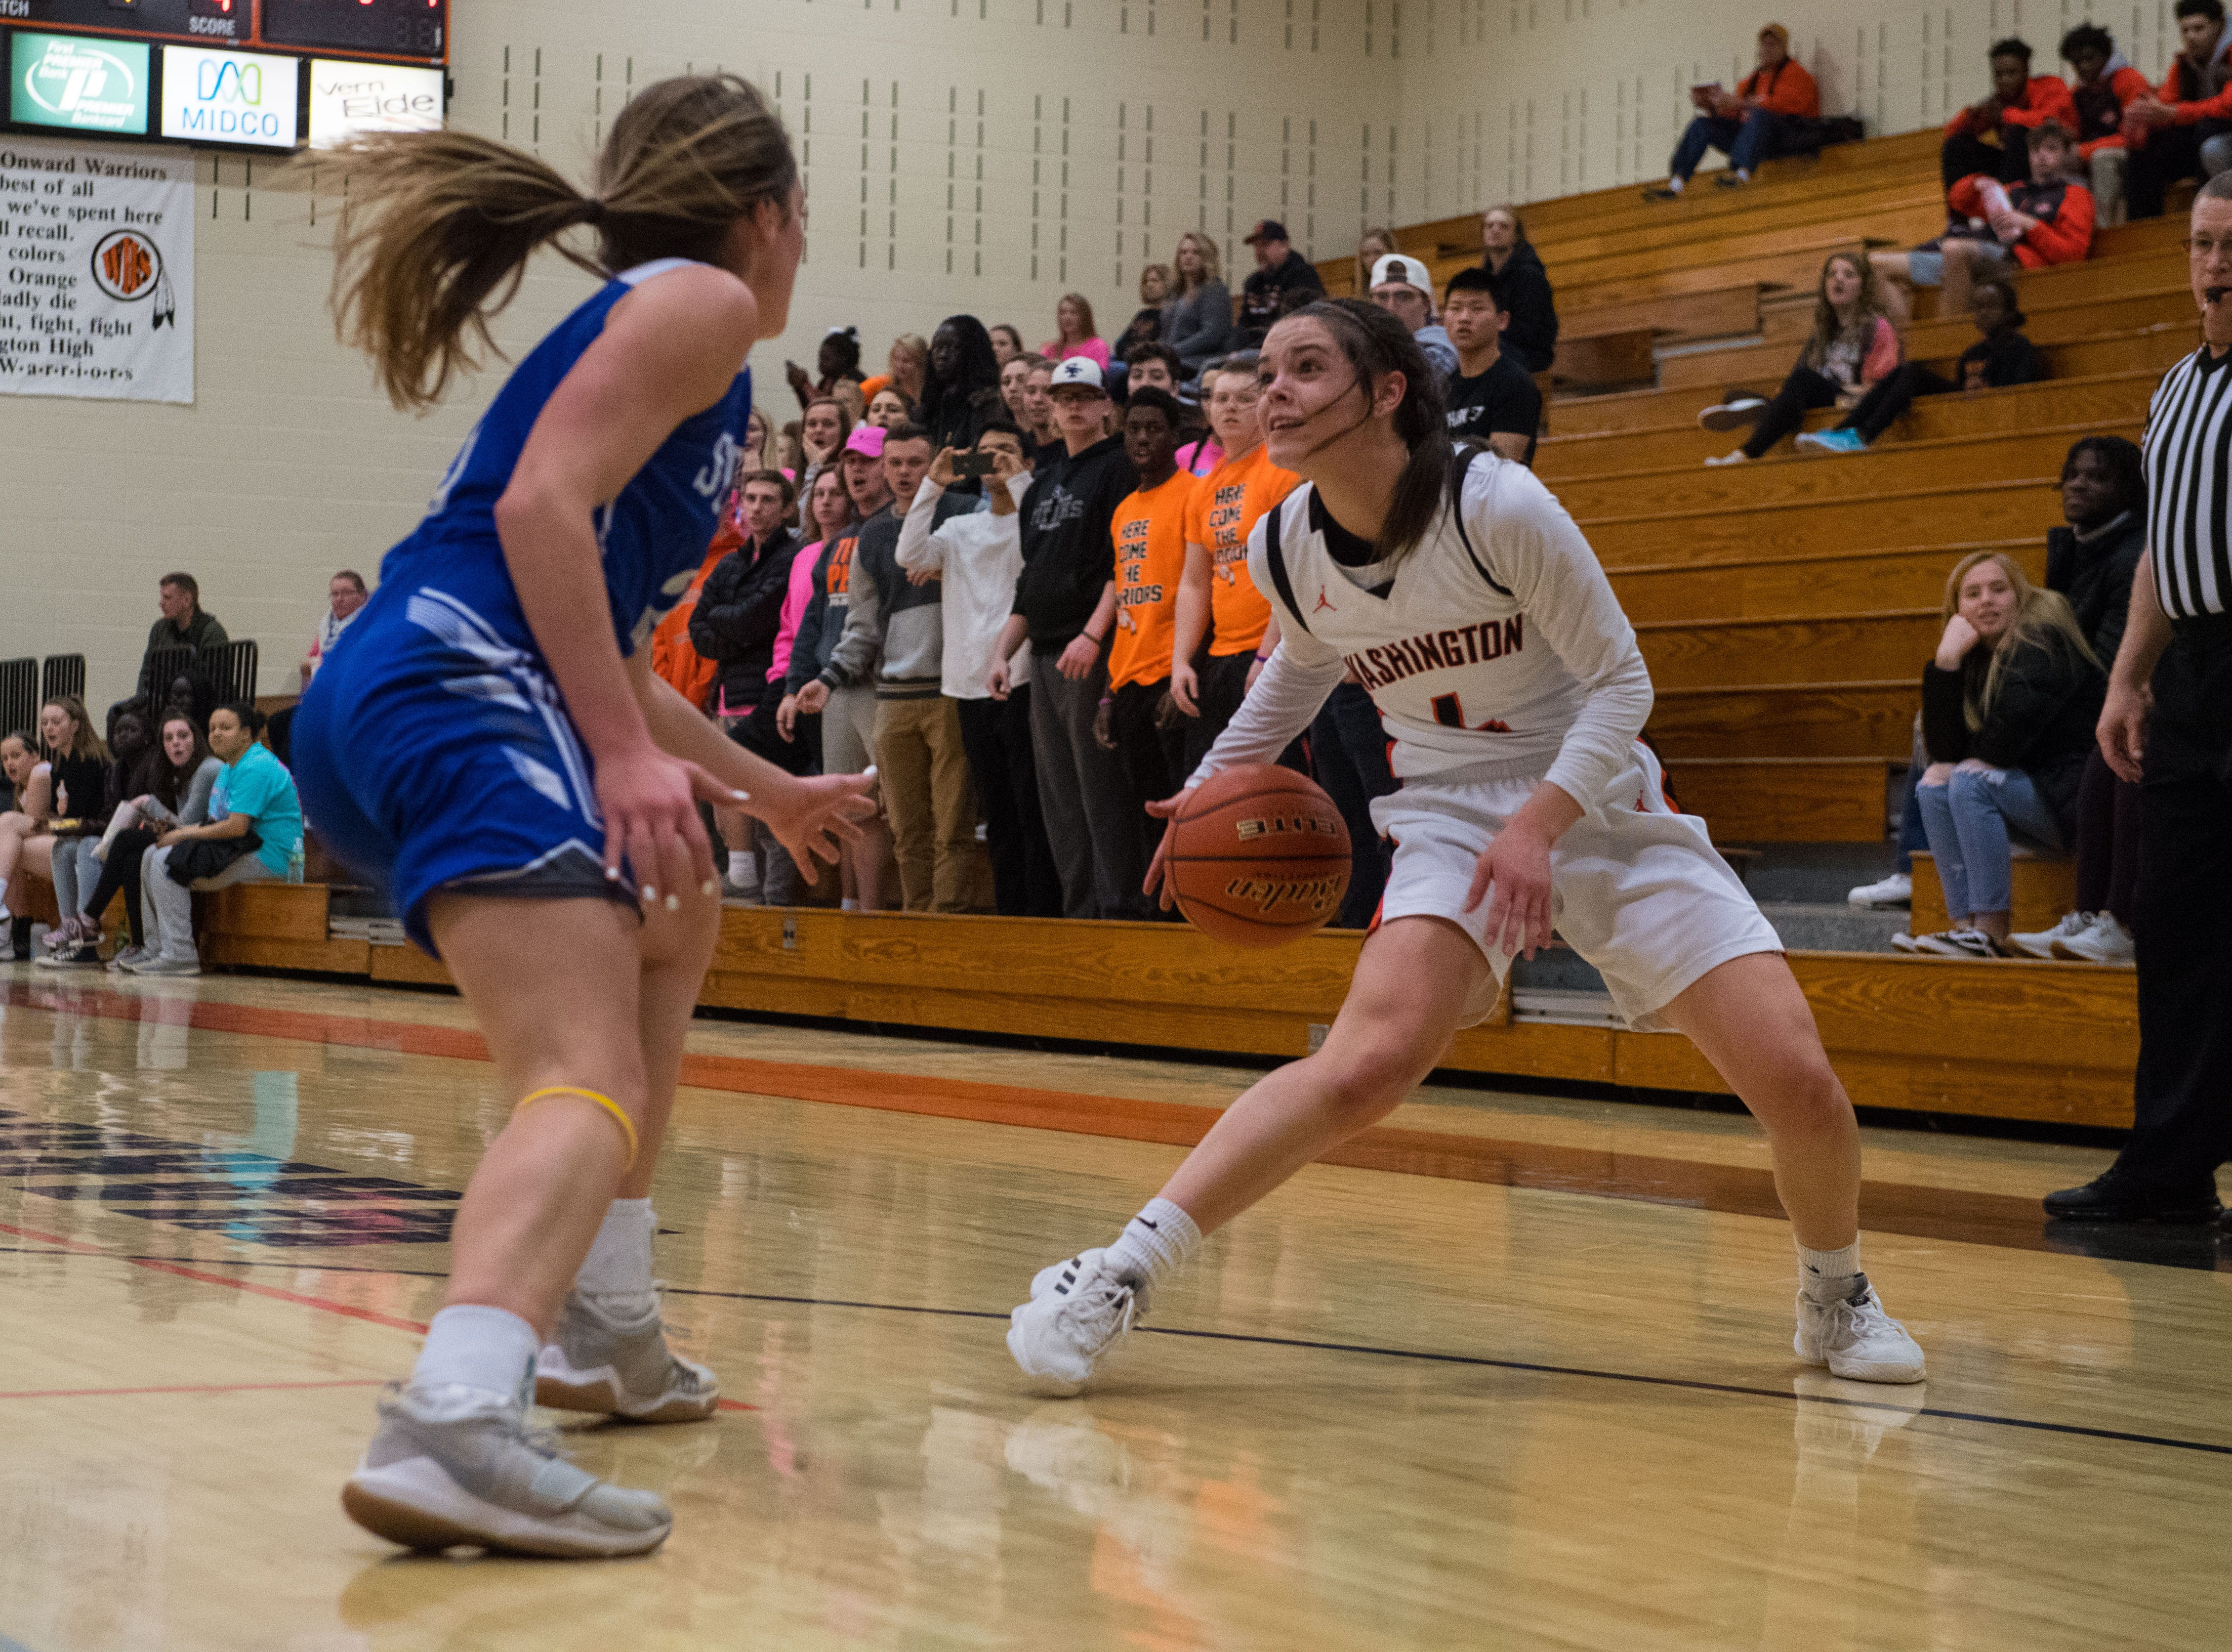 Washington's Brynn Heinert (4) dribbles the ball past Rapid City Stevens player during a game in Sioux Falls, S.D., Friday, Feb. 8, 2019.